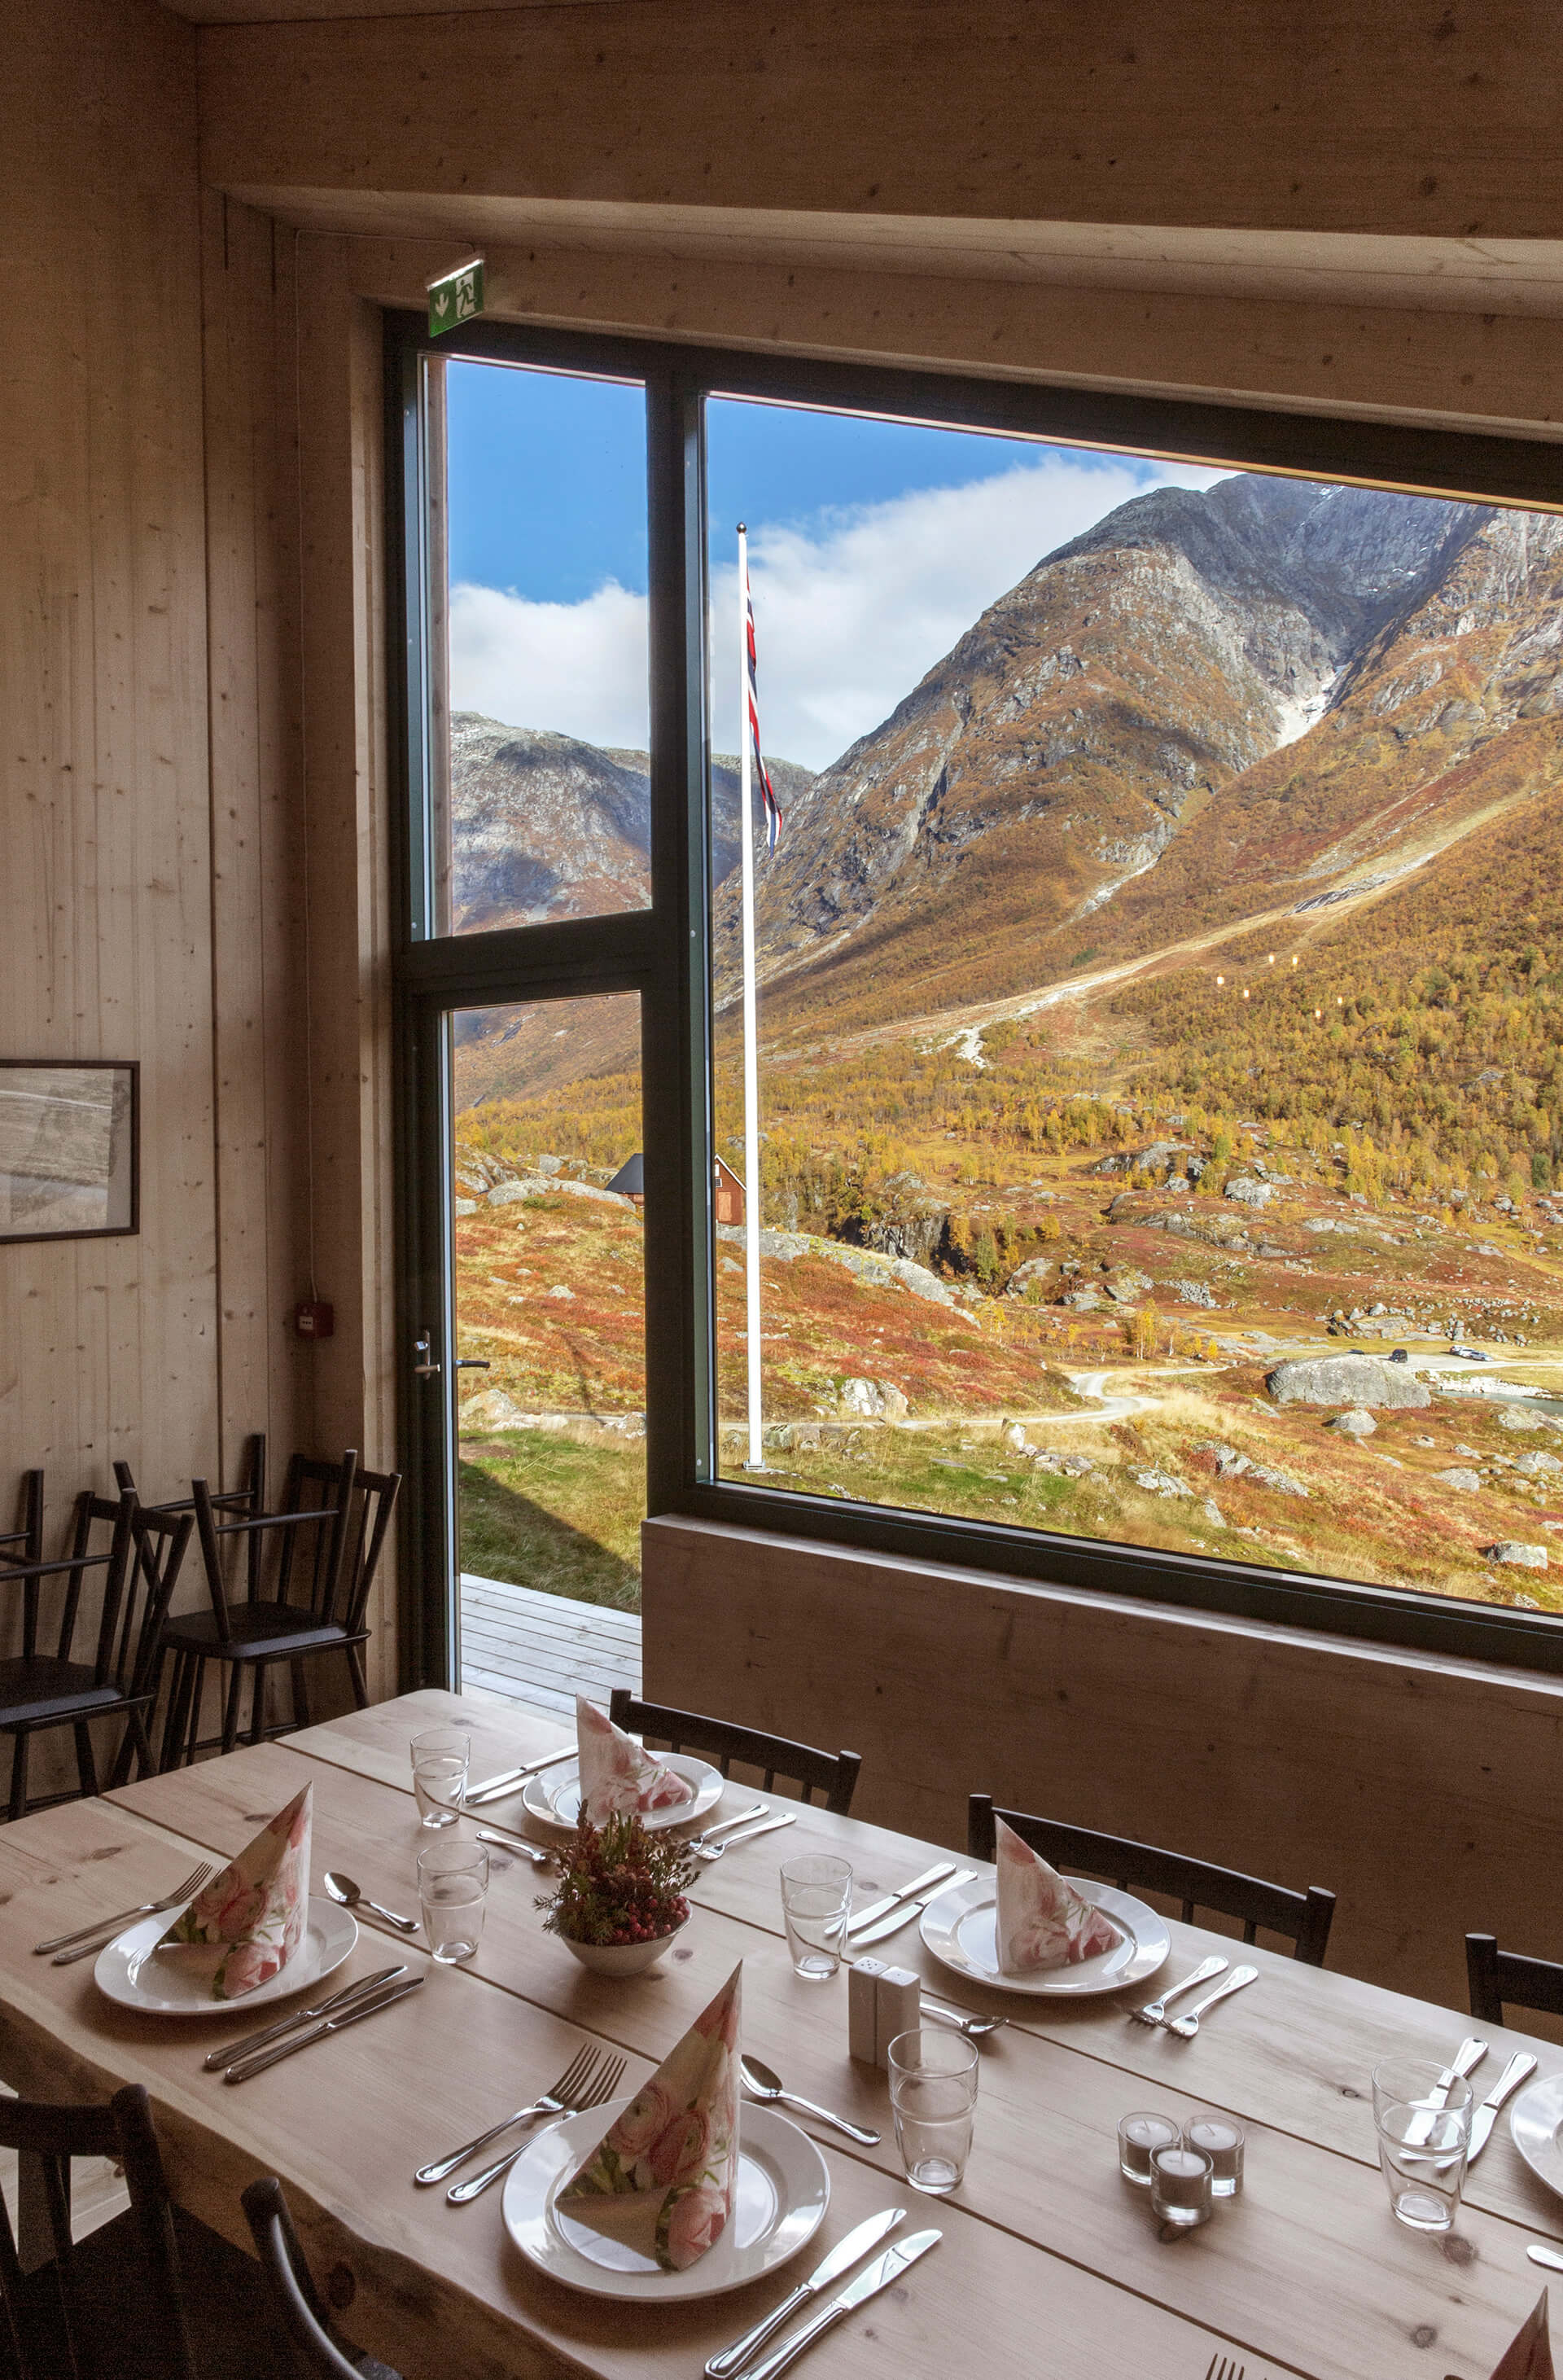 The dining room with views of the picturesque valley outside | Tungestølen Hiking Cabin by Snøhetta | STIRworld